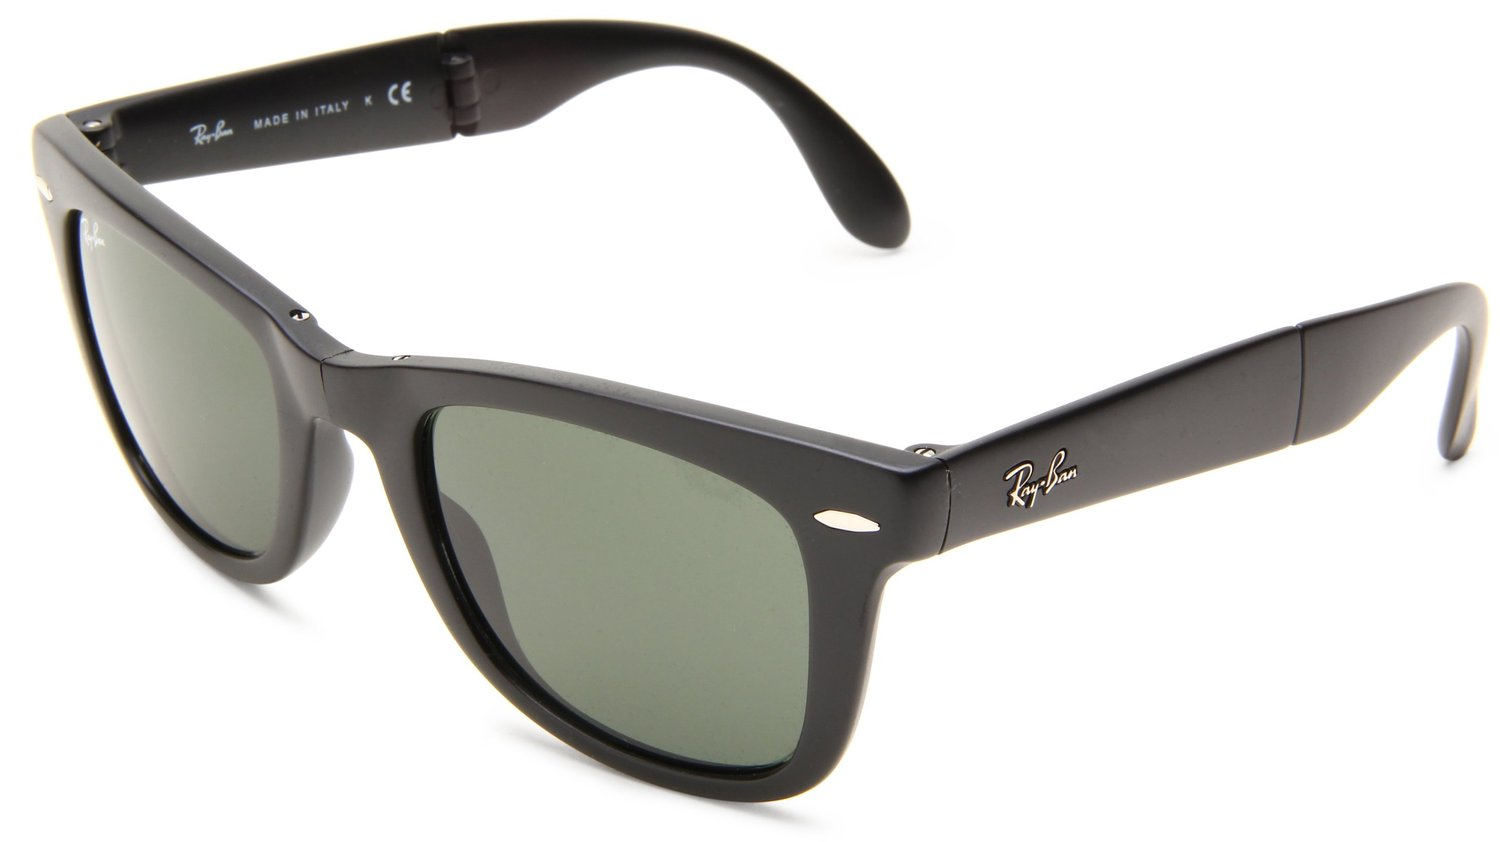 Ray Ban Mens Folding Wayfarer Square Sunglasses